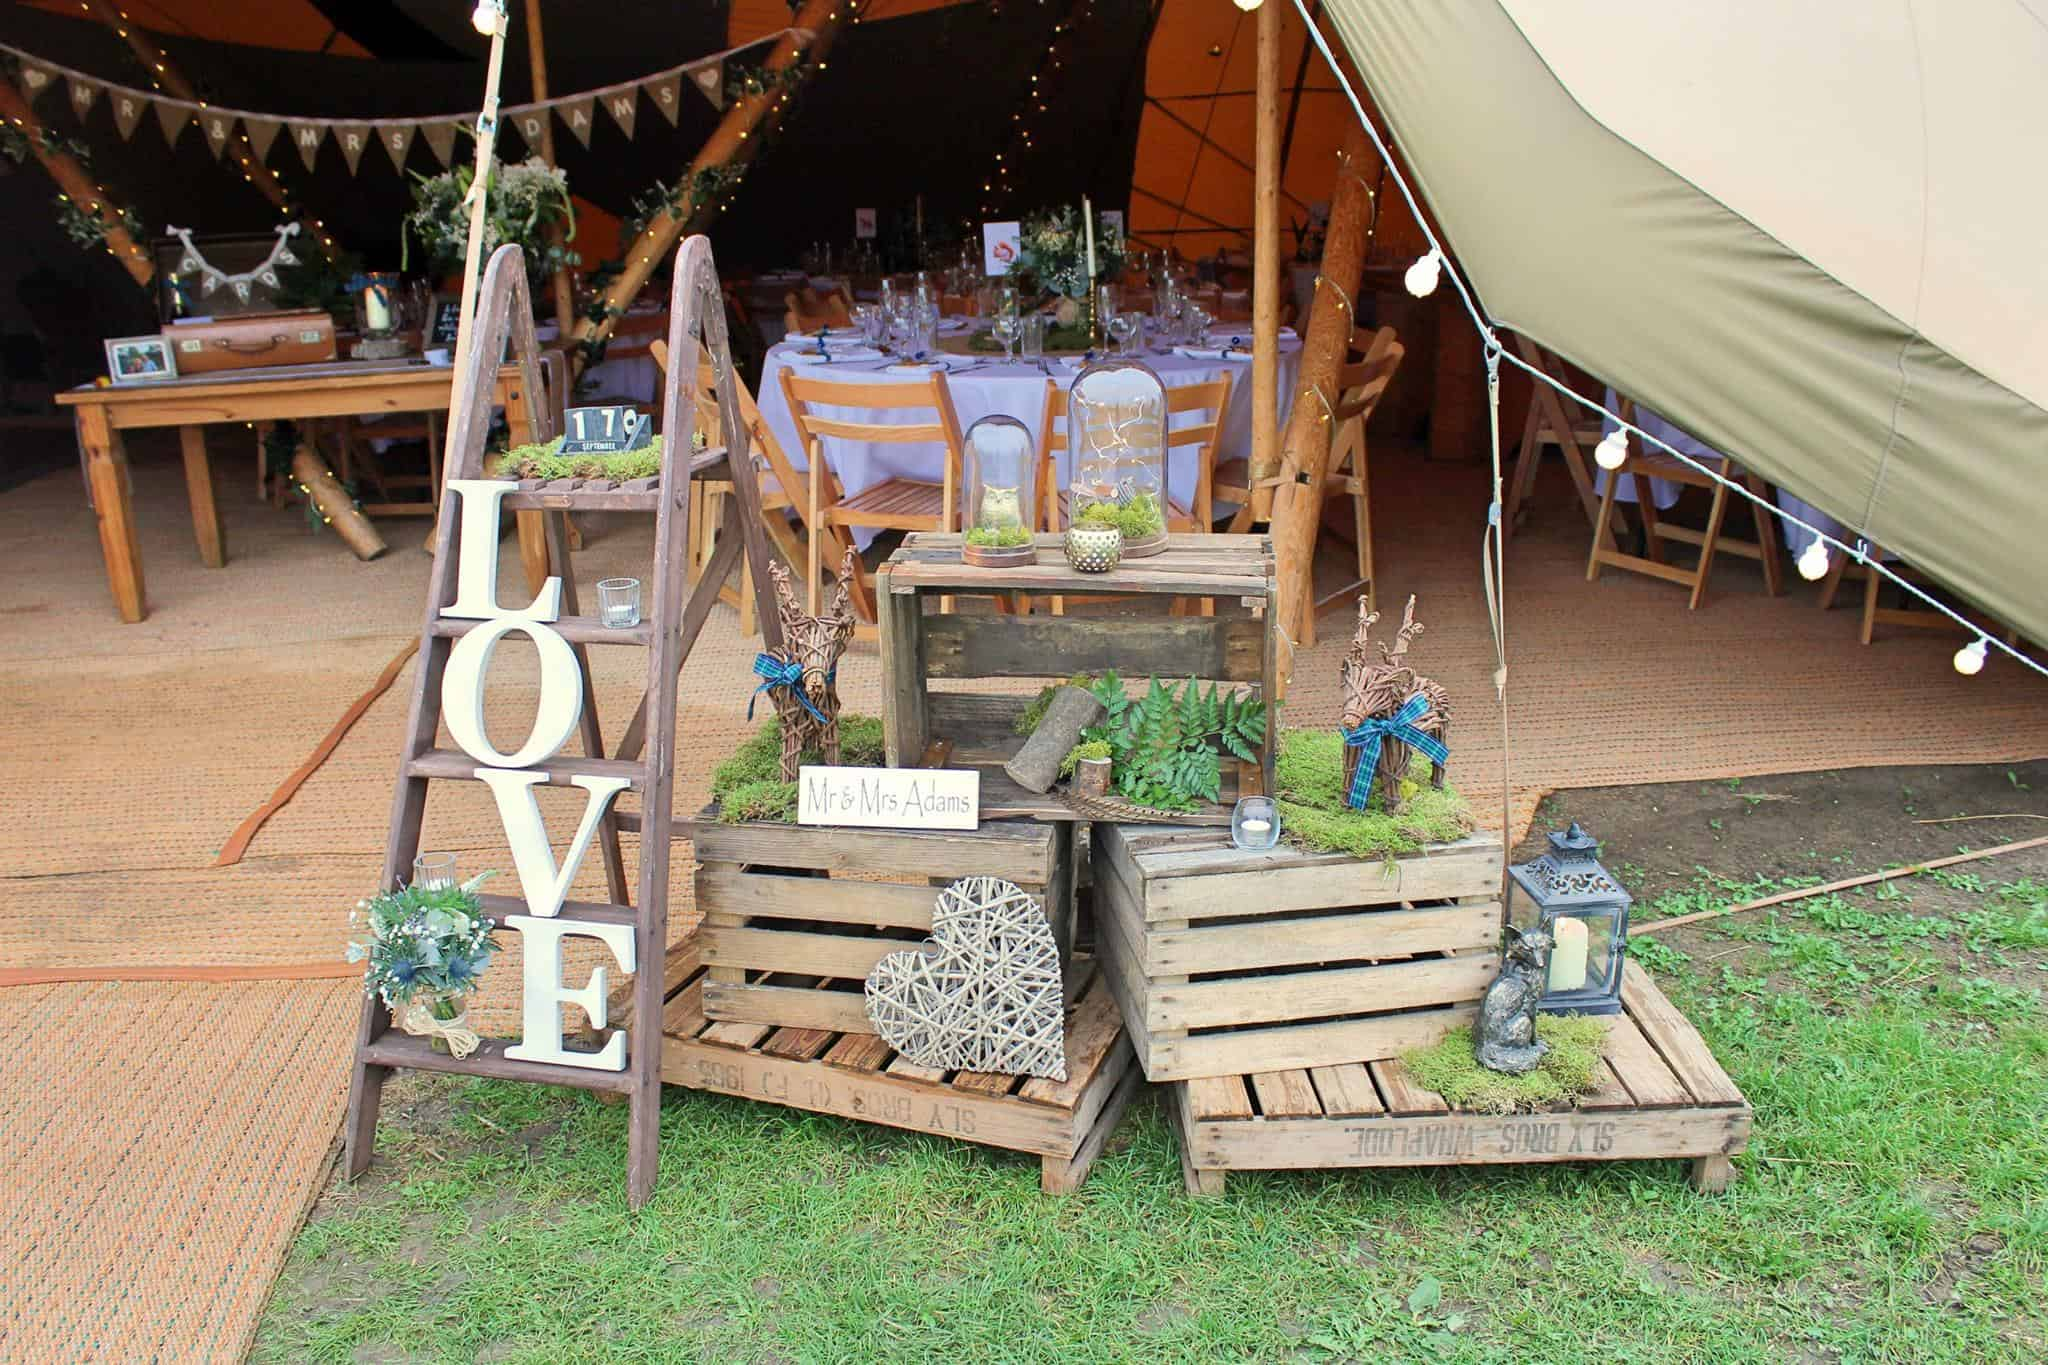 Rustic Tipi Entrance - Woodland themed styling by The Rustic Wedding Company